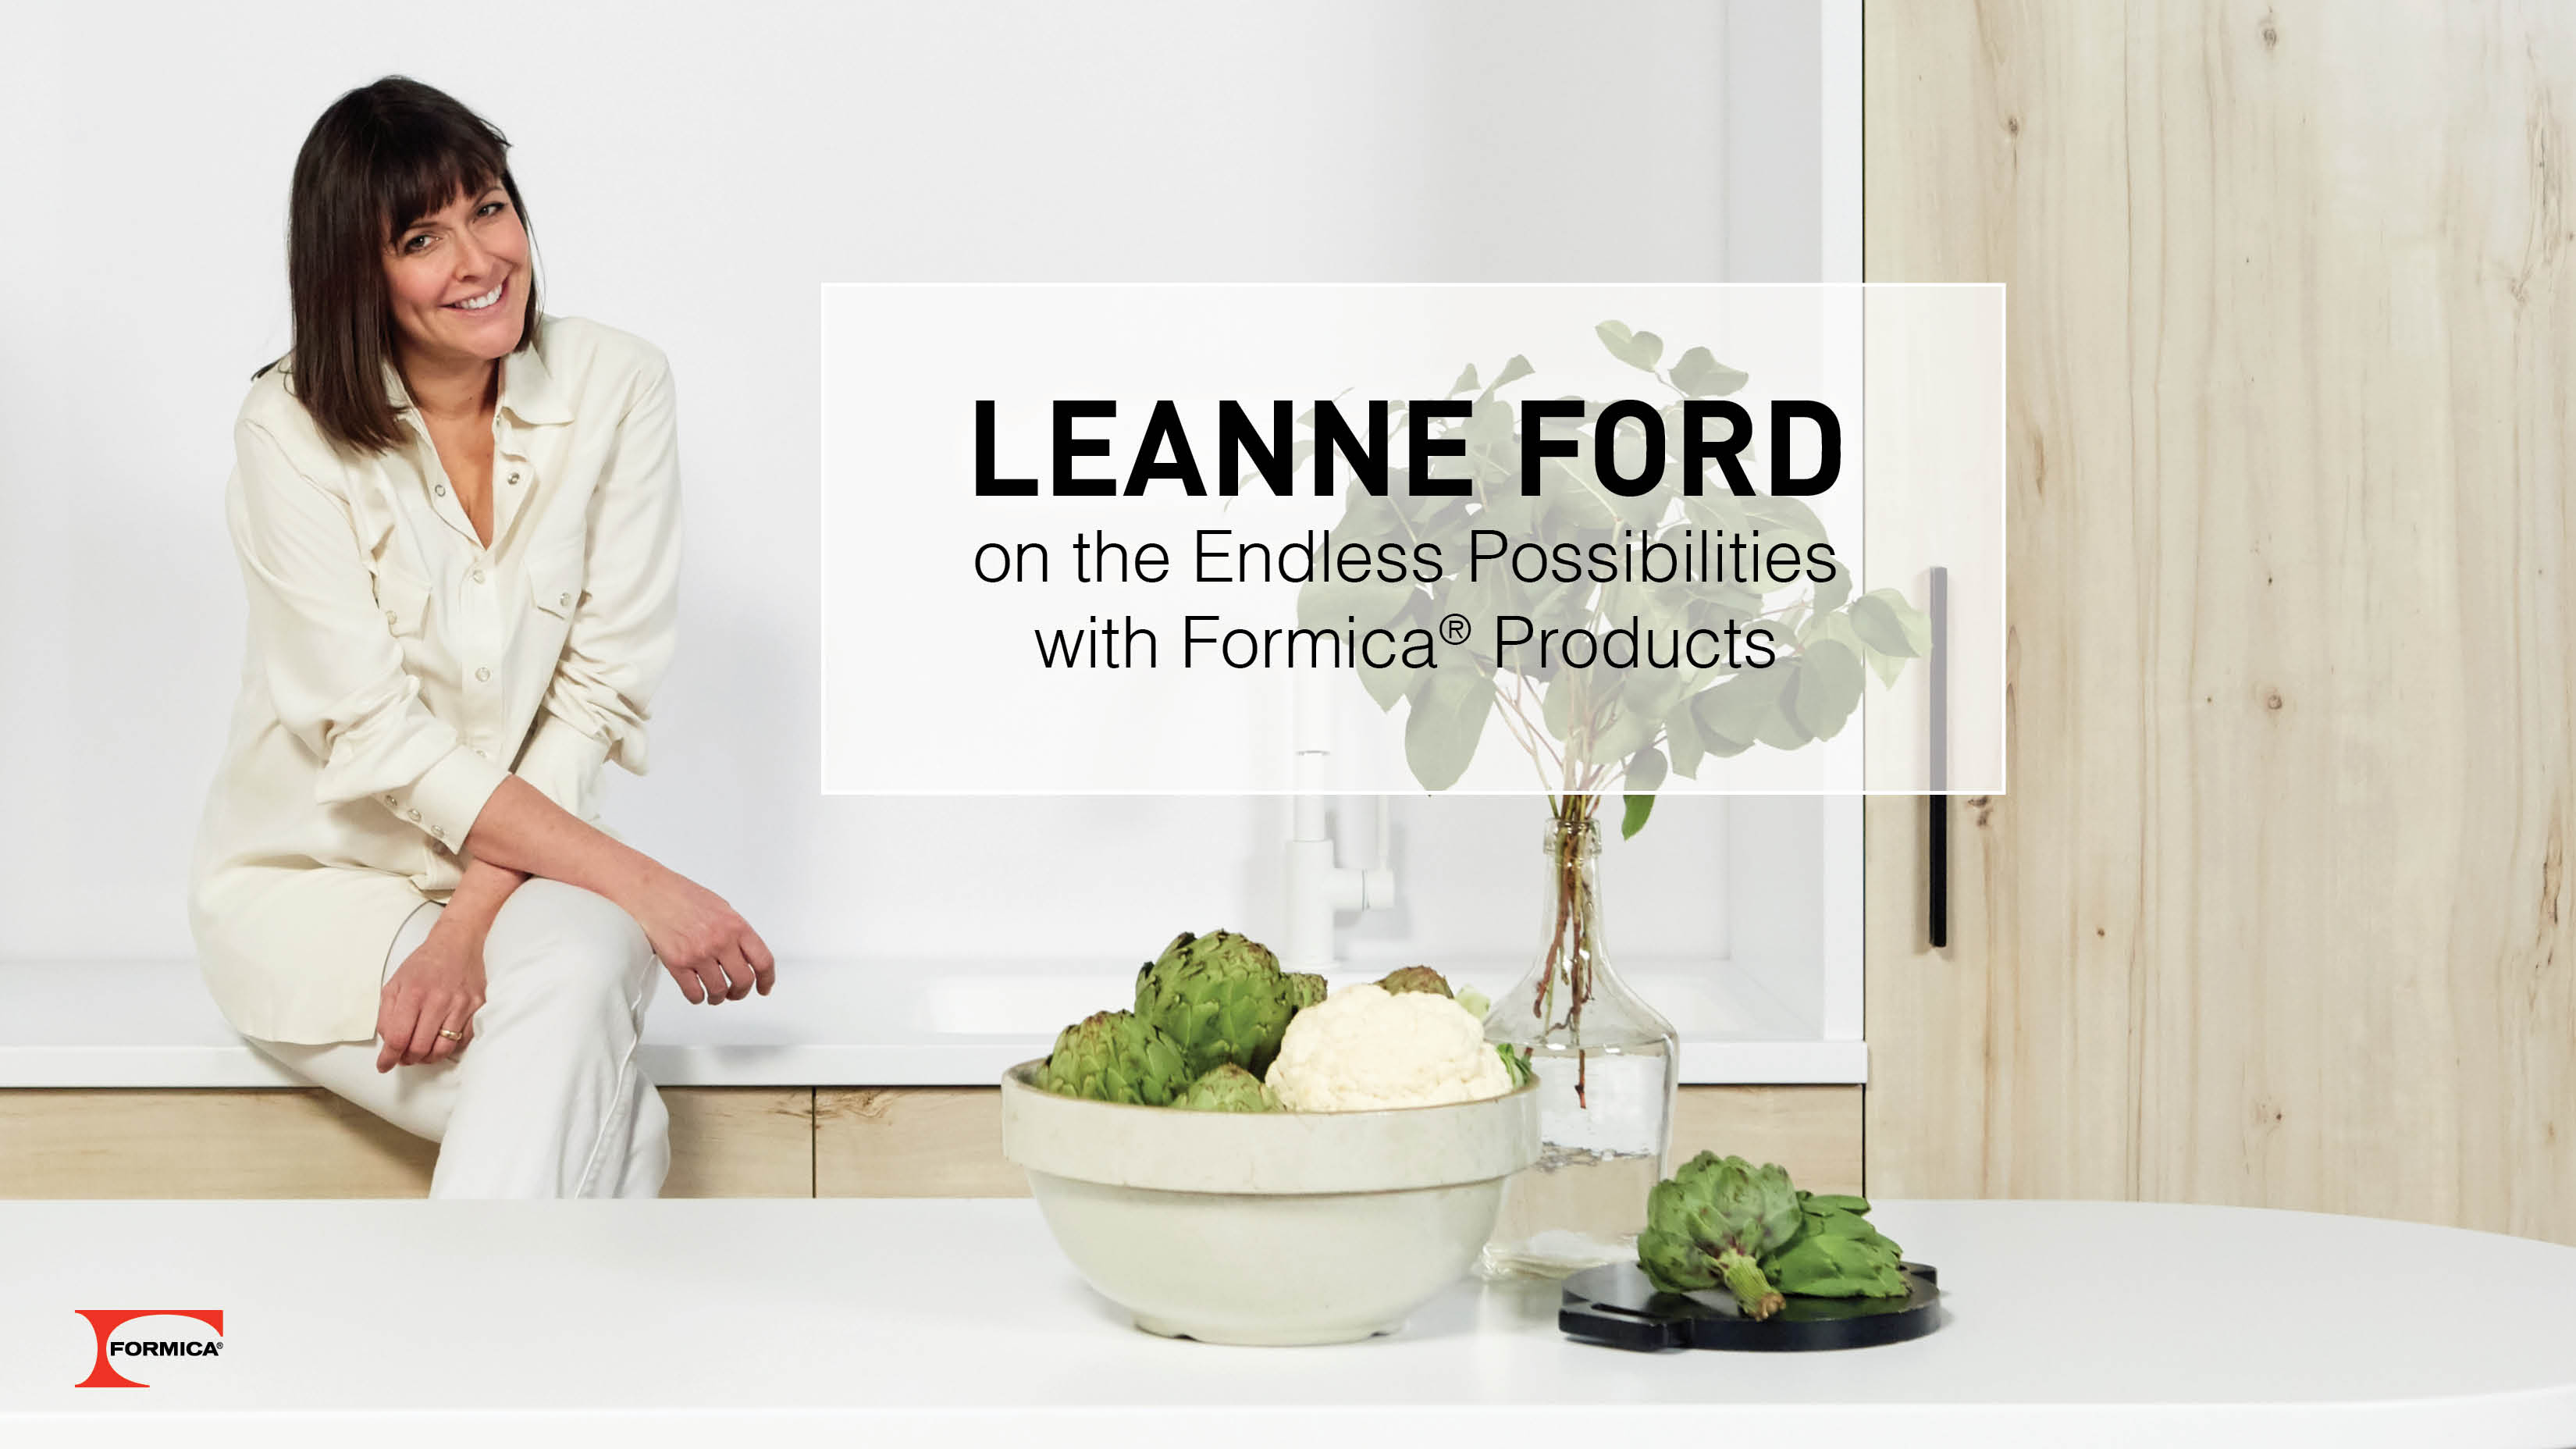 Leanne Ford on the Benefits of Formica® Brand Products